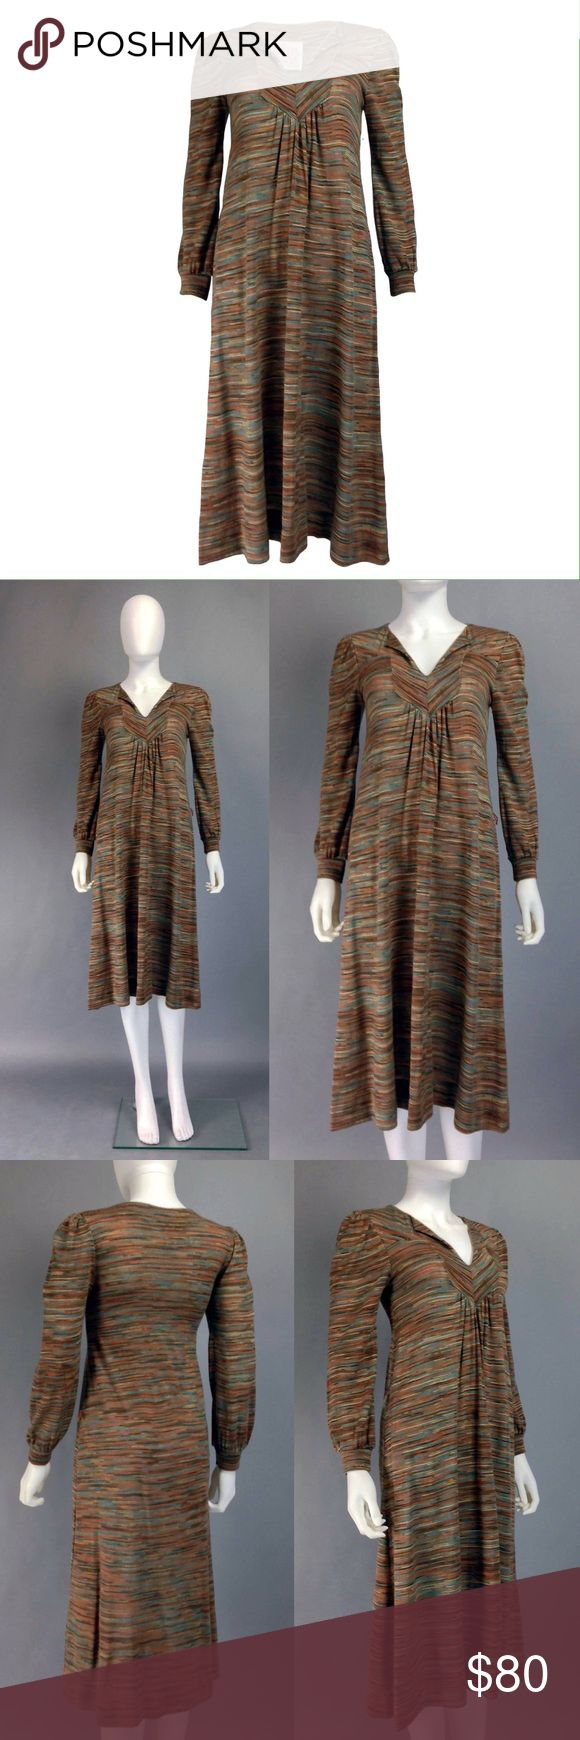 """VINTAGE 70s KNIT MARLED WOOL DRESS by TRISHA SAYAD FEATURES: •Marled 100% wool knit in a gorgeous color scheme of browns & multi colors  •Accented v-neck w foldover collar •Slim A-line cut •Long pouf sleeves •Ruched front •Belt loops for optional belt •Pullover style •A Trisha Sayad creation: The Willis Avenue Bridge Works  CONDITION: Awesome piece in excellent vintage condition  SIZING: Best estimated fit:XS/S  MEASUREMENTS: •Shoulders:14"""" •Bust:32-36"""" (stretchy) •Waist:Free (can be cinched…"""